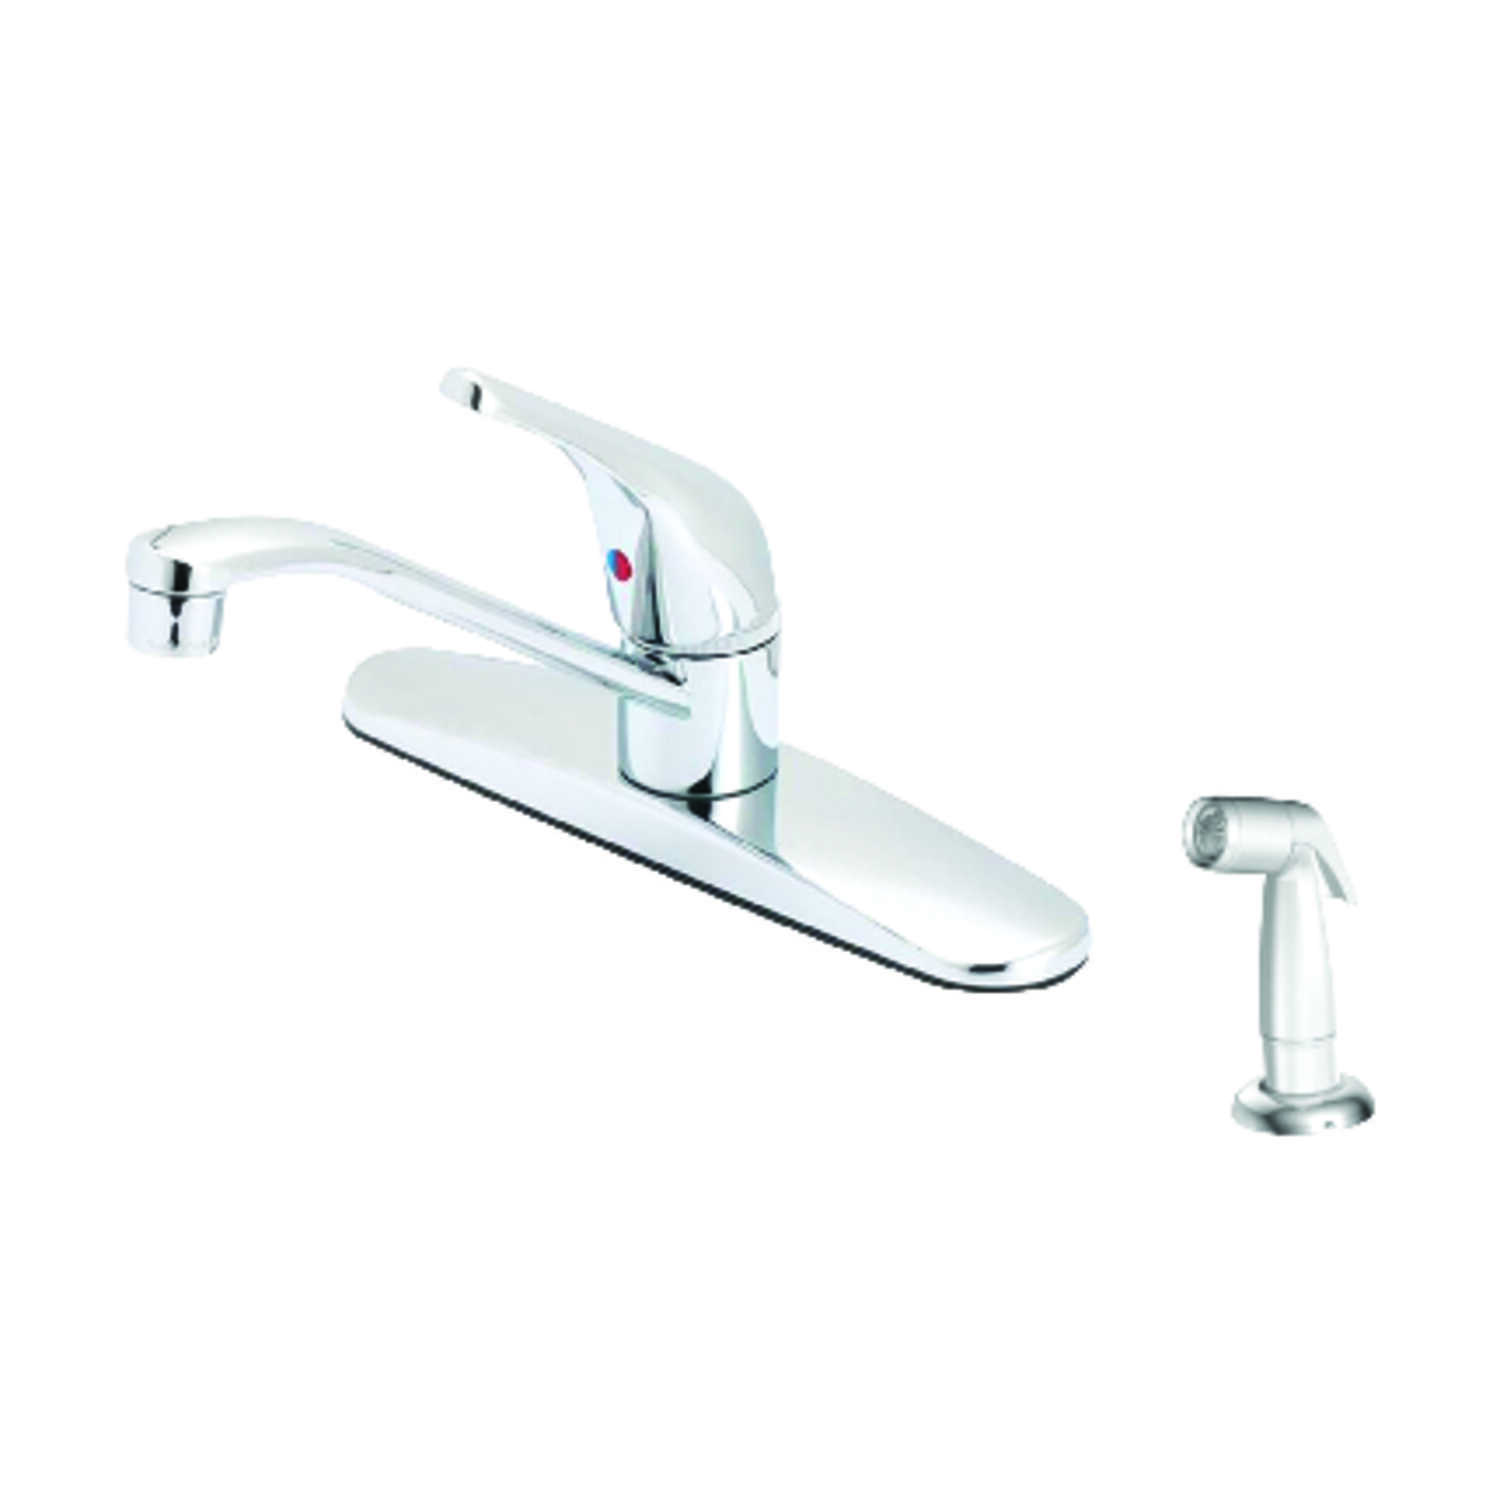 OakBrook  Washerless Cartridge  One Handle  Chrome  Kitchen Faucet  Side Sprayer Included